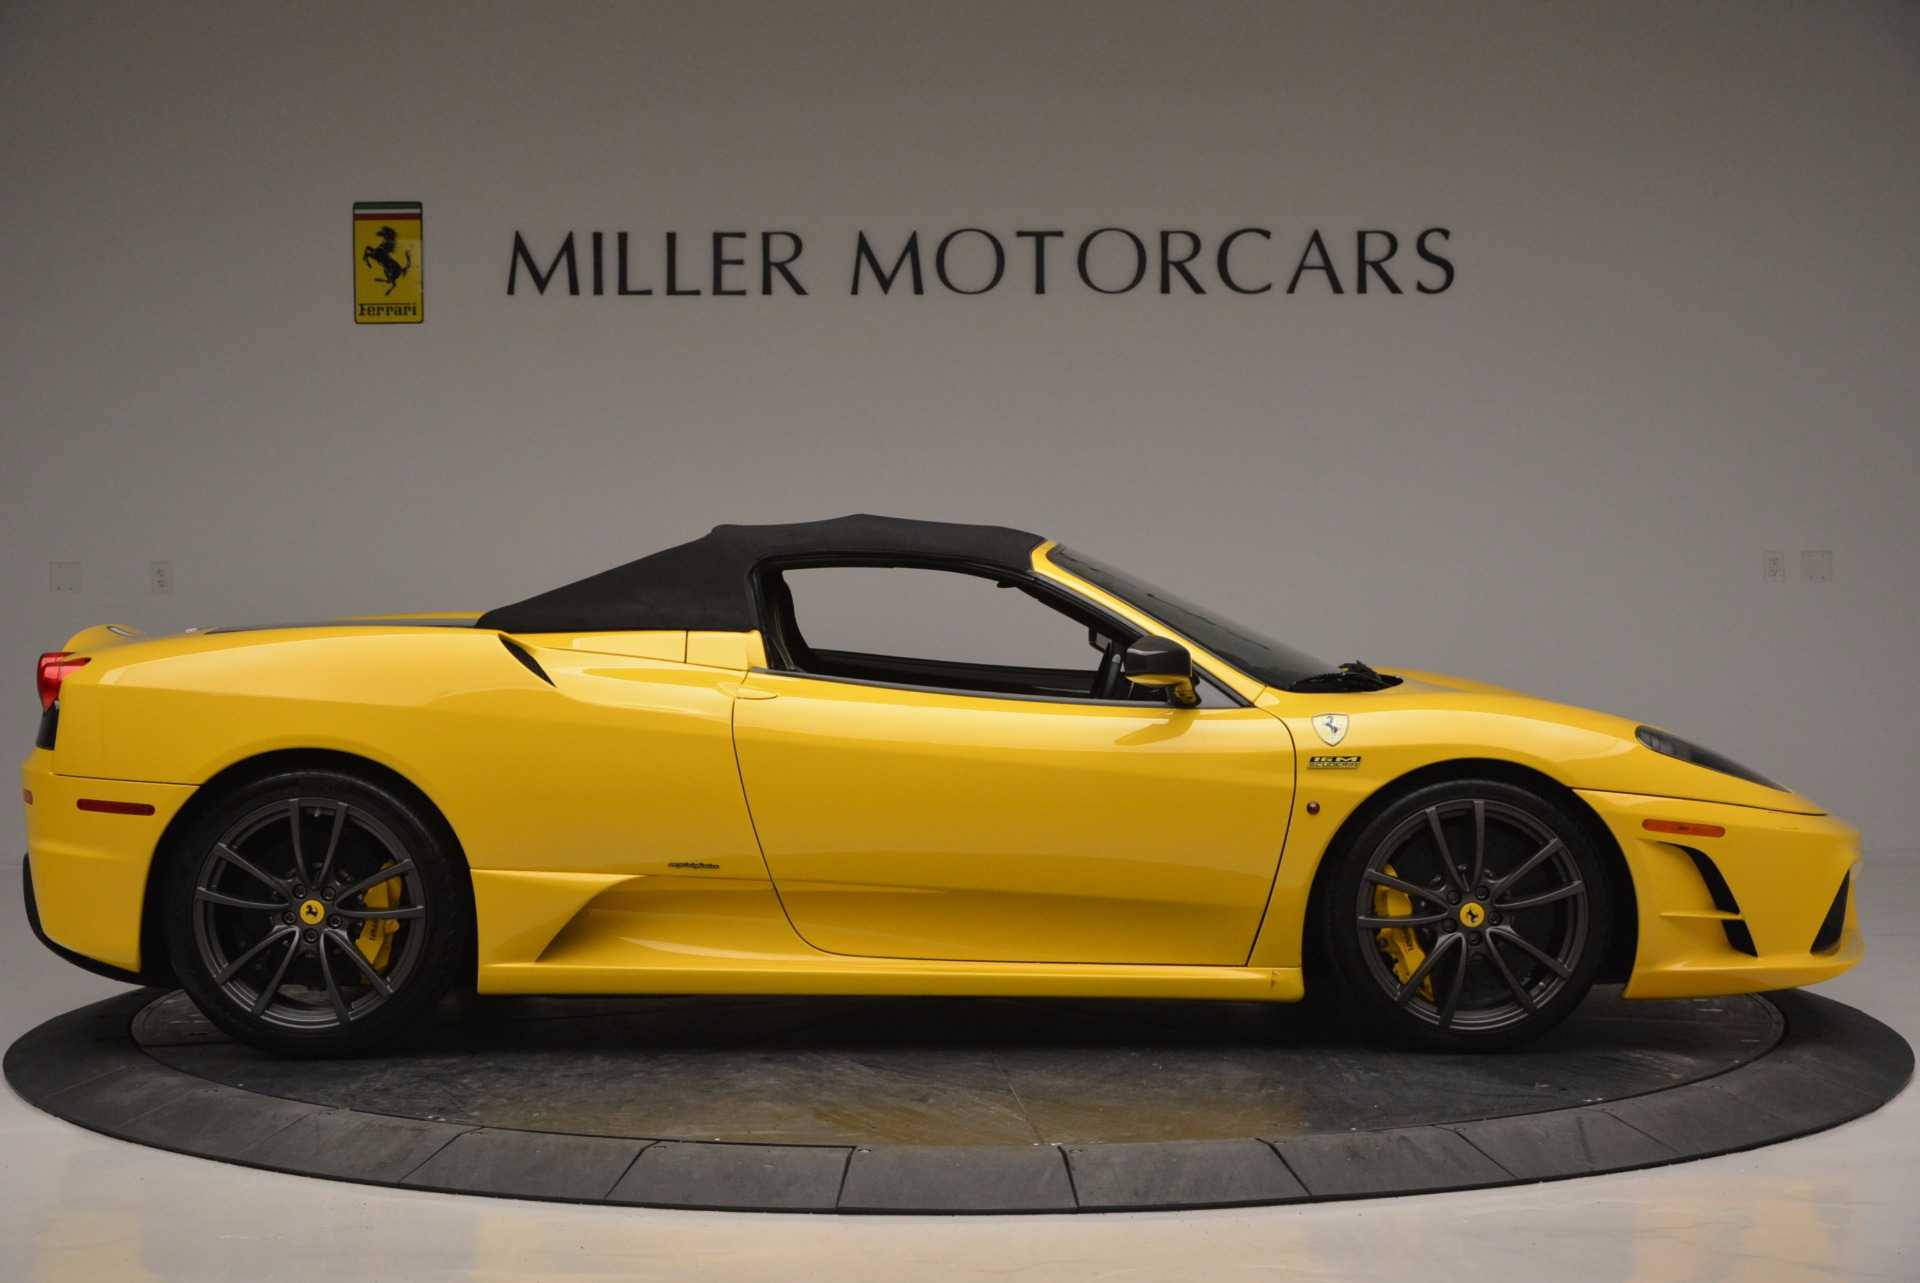 Used 2009 Ferrari F430 Scuderia 16M For Sale In Greenwich, CT 856_p21